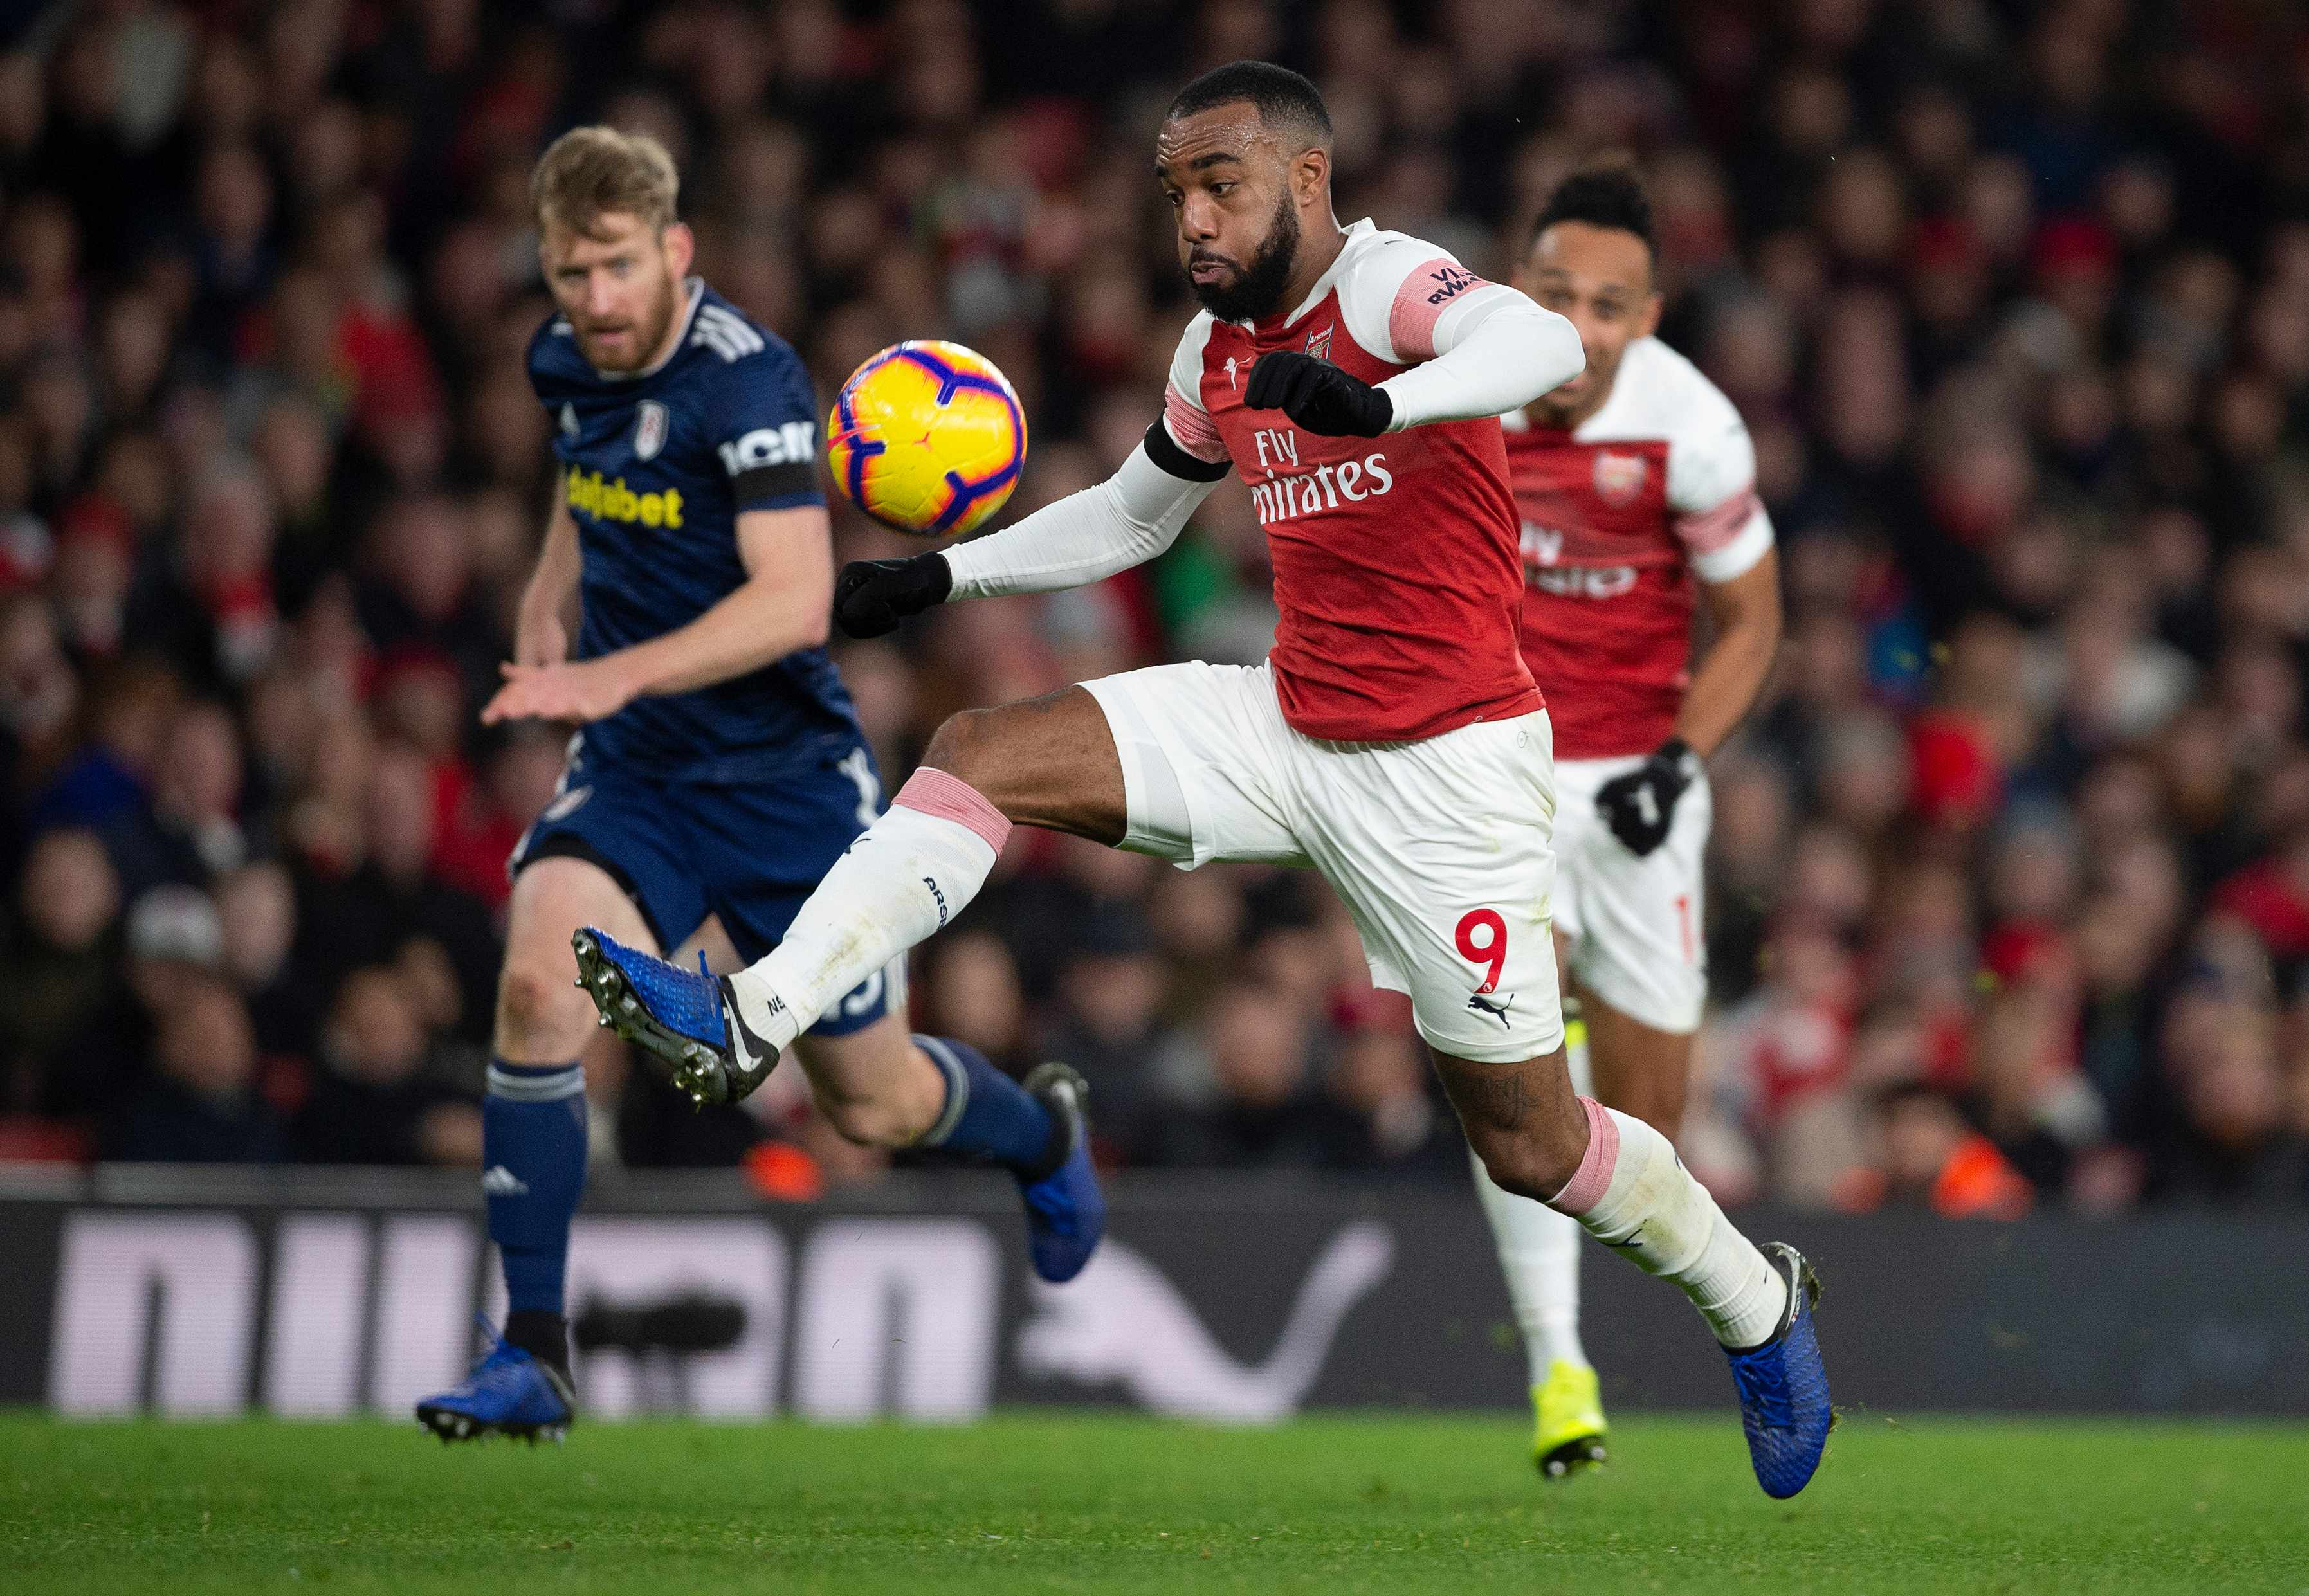 LONDON, ENGLAND - JANUARY 01: Alexandre Lacazette of Arsenal during the Premier League match between Arsenal FC and Fulham FC at Emirates Stadium on January 1, 2019 in London, United Kingdom. (Photo by Visionhaus/Getty Images)